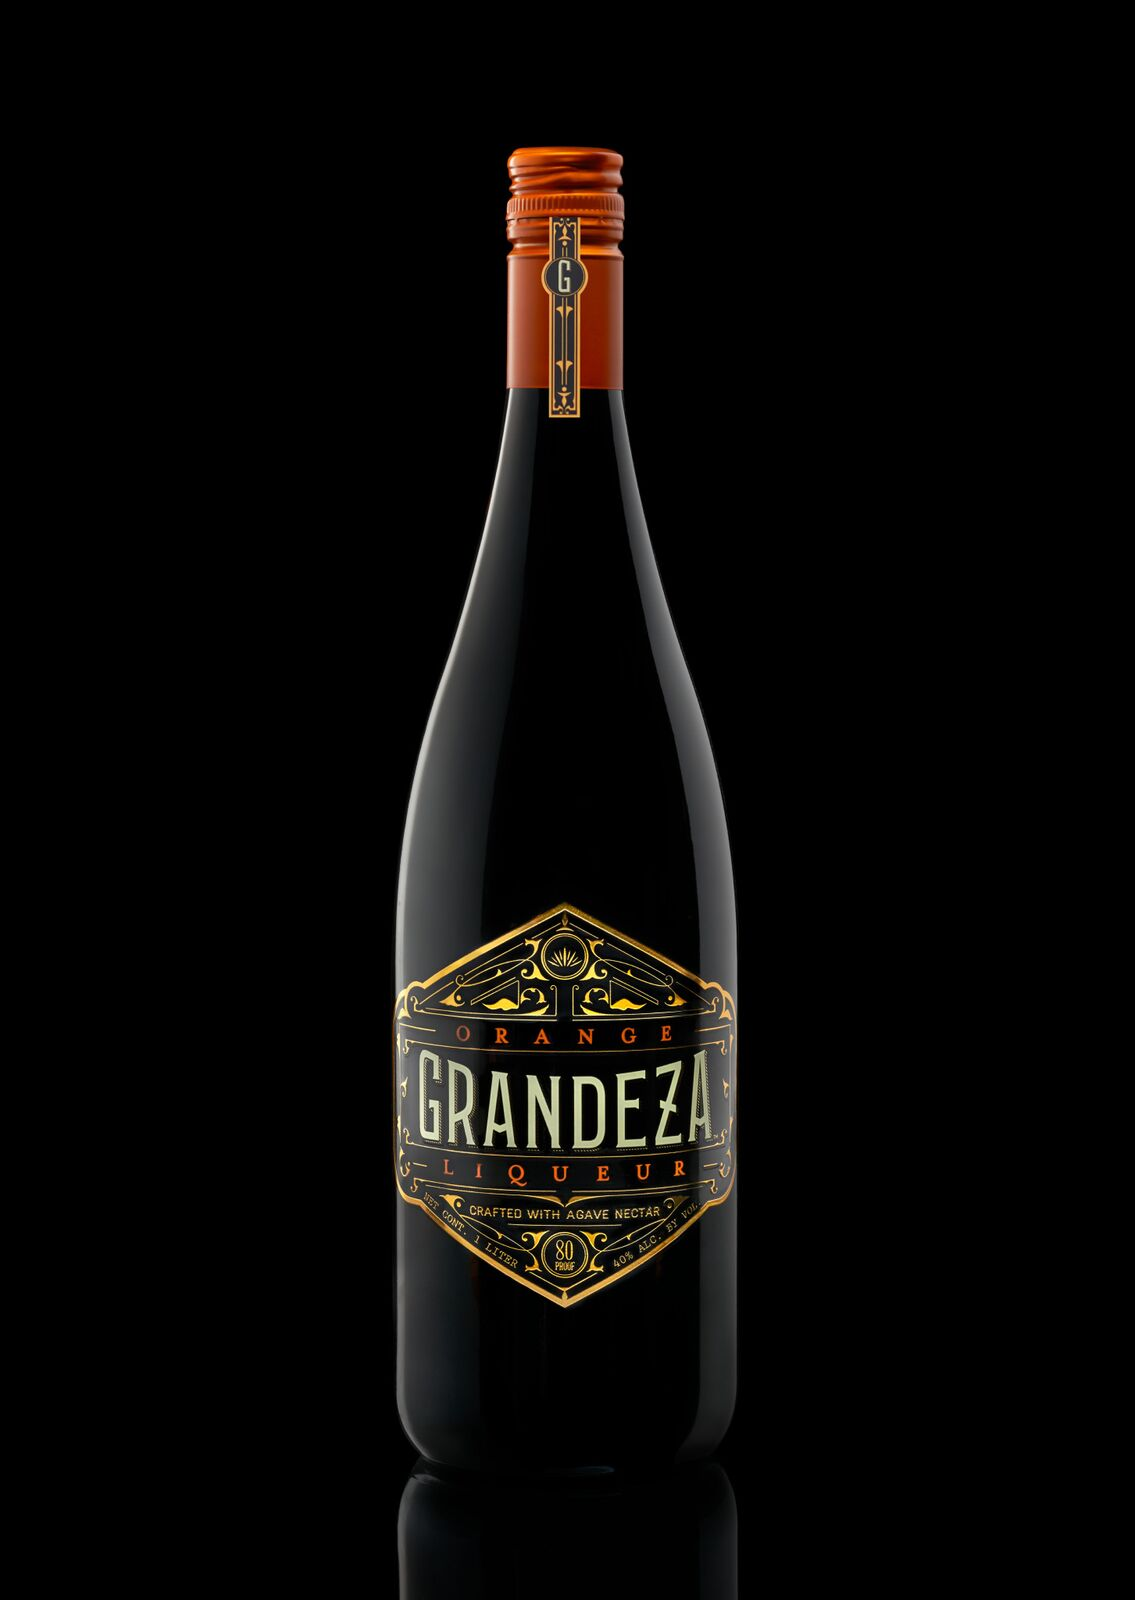 (Image courtesy of Grandeza Orange Liqueur).